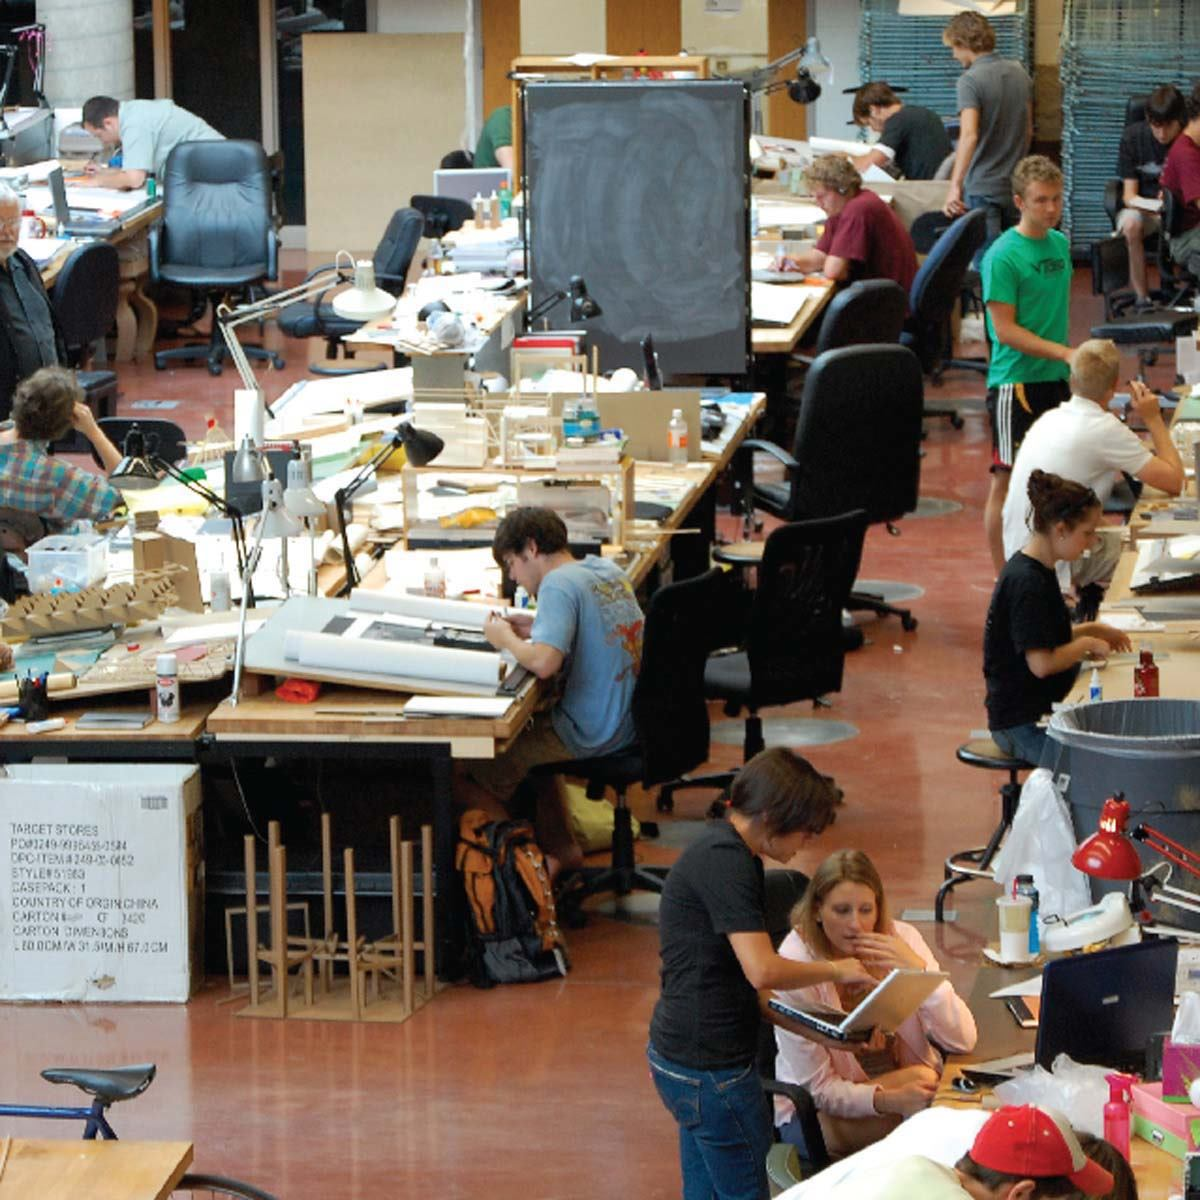 the top 10 undergraduate architecture schools in the u.s.